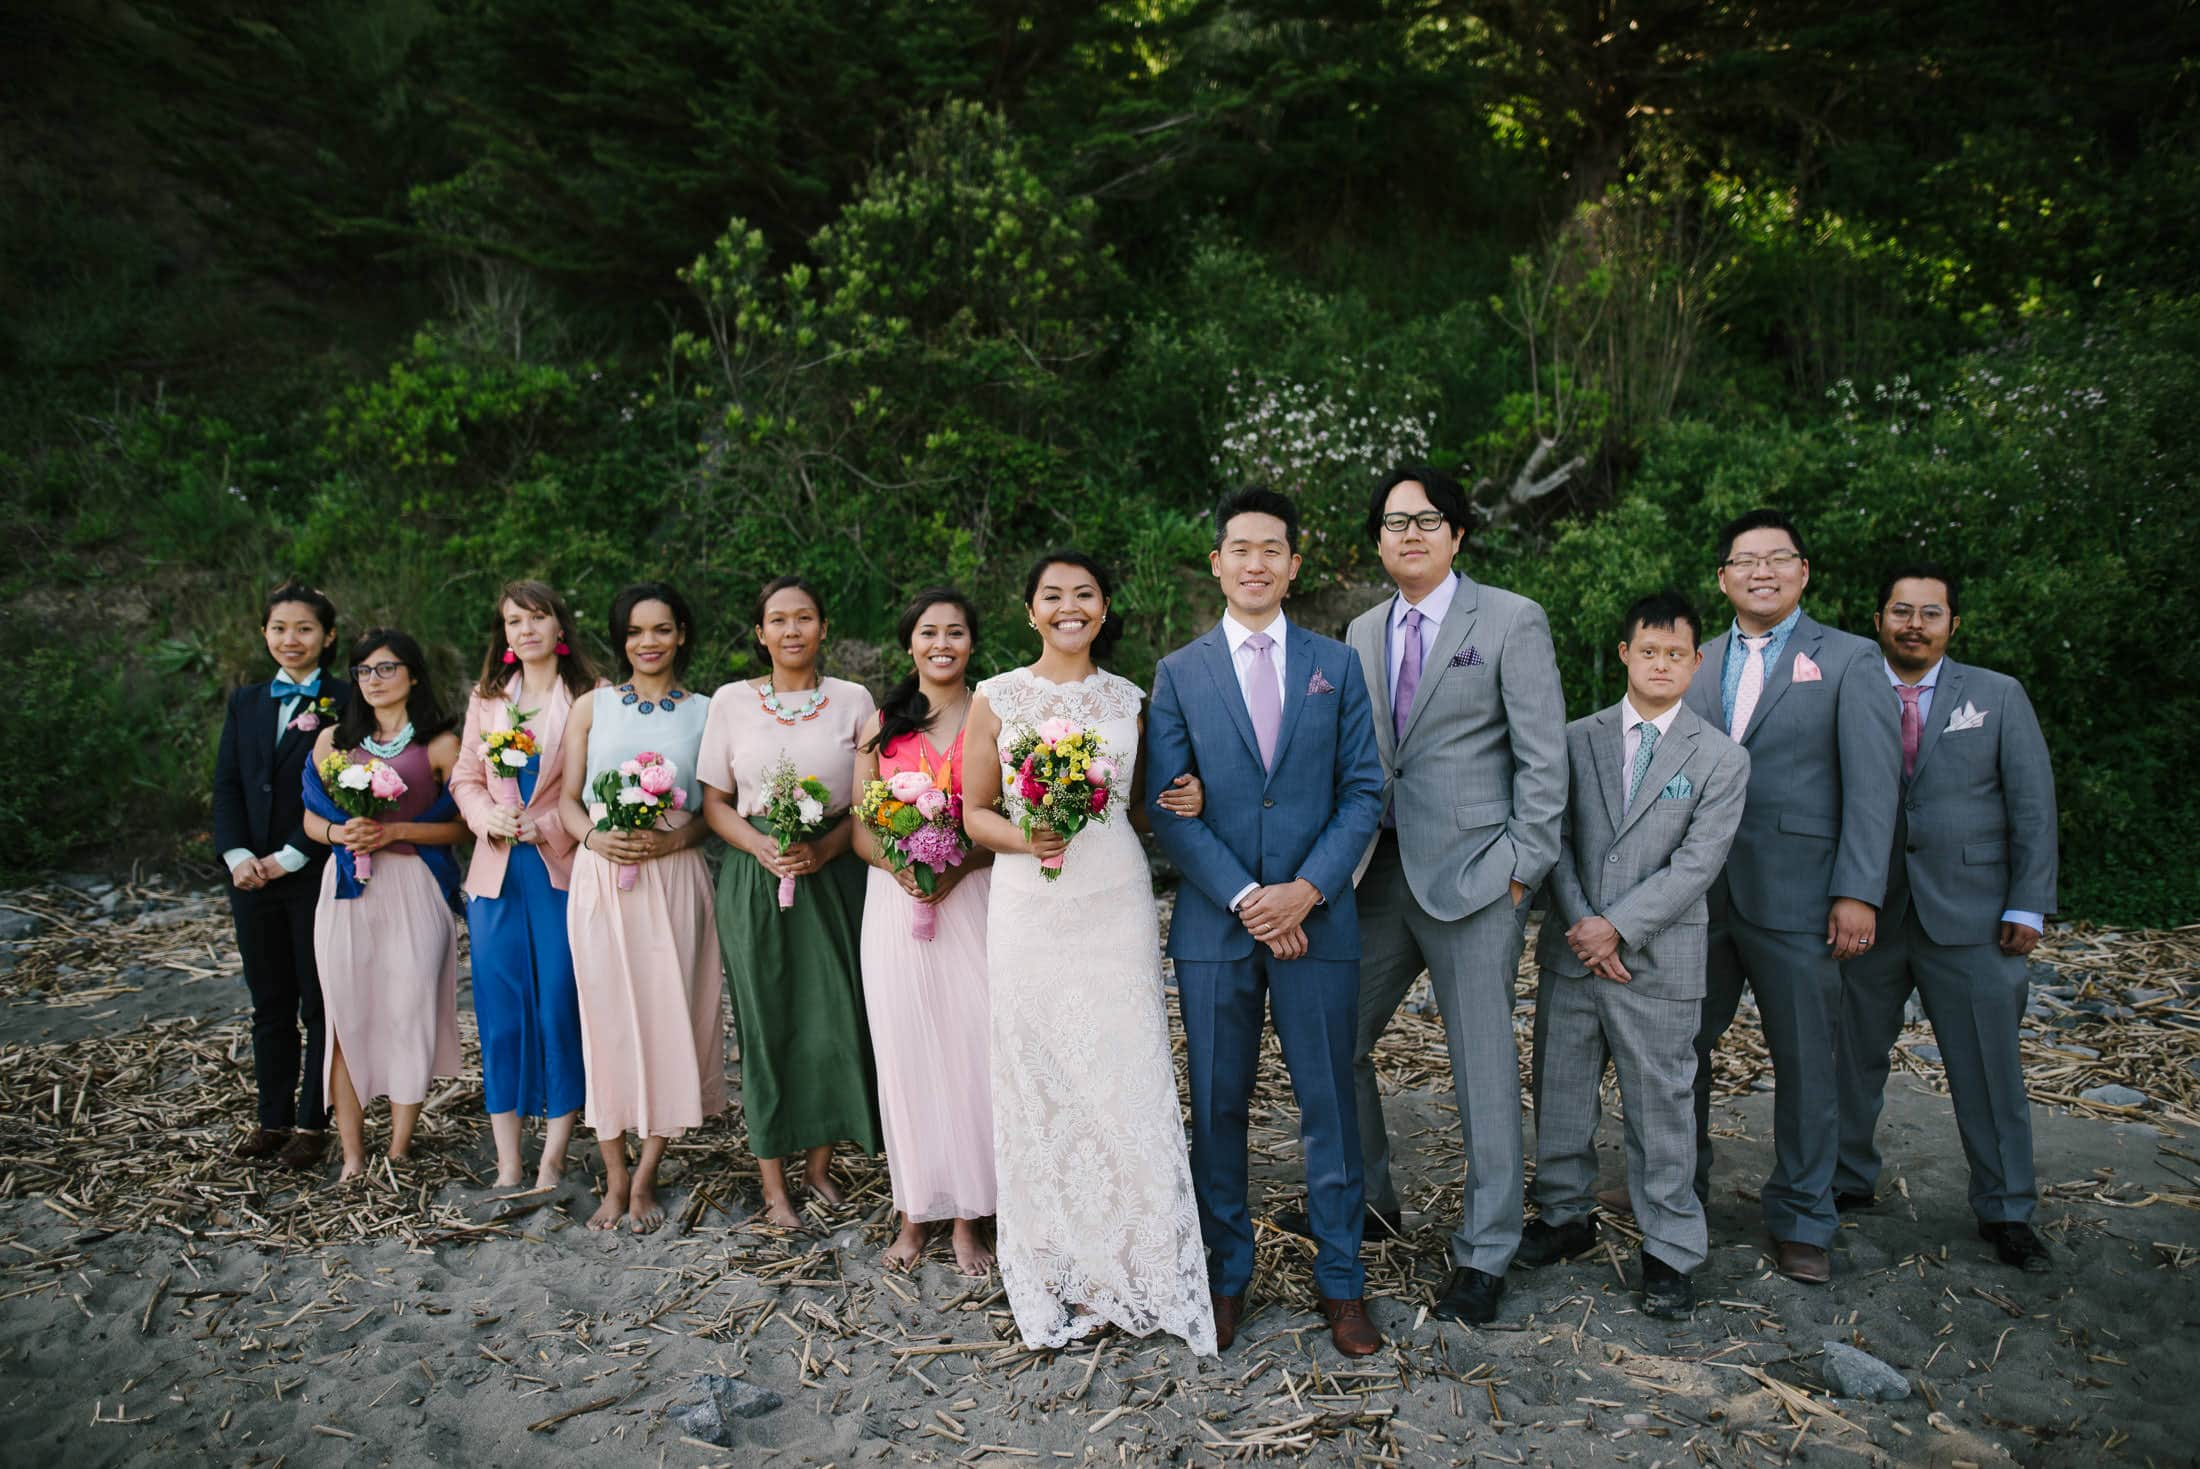 Muir Beach Wedding Party Portrait